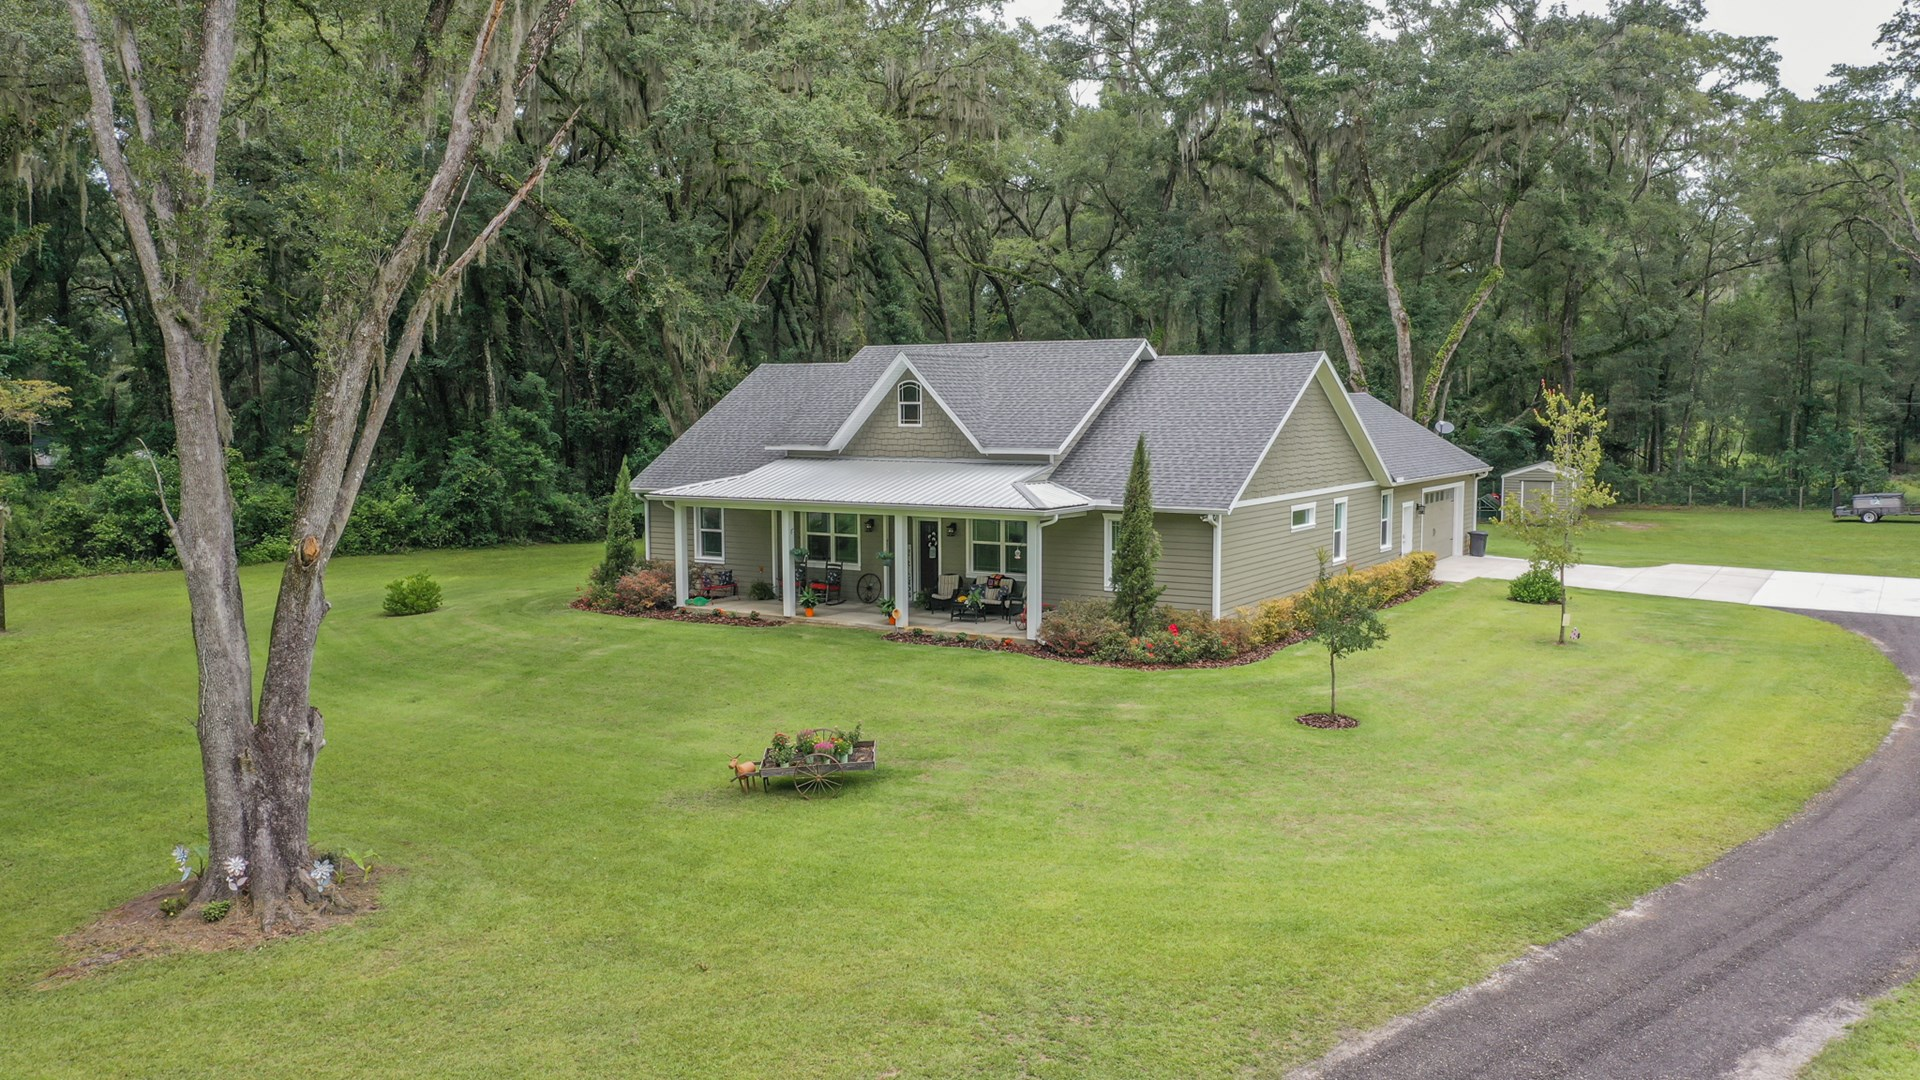 GORGEOUS HOME IN NEWBERRY FLORIDA!